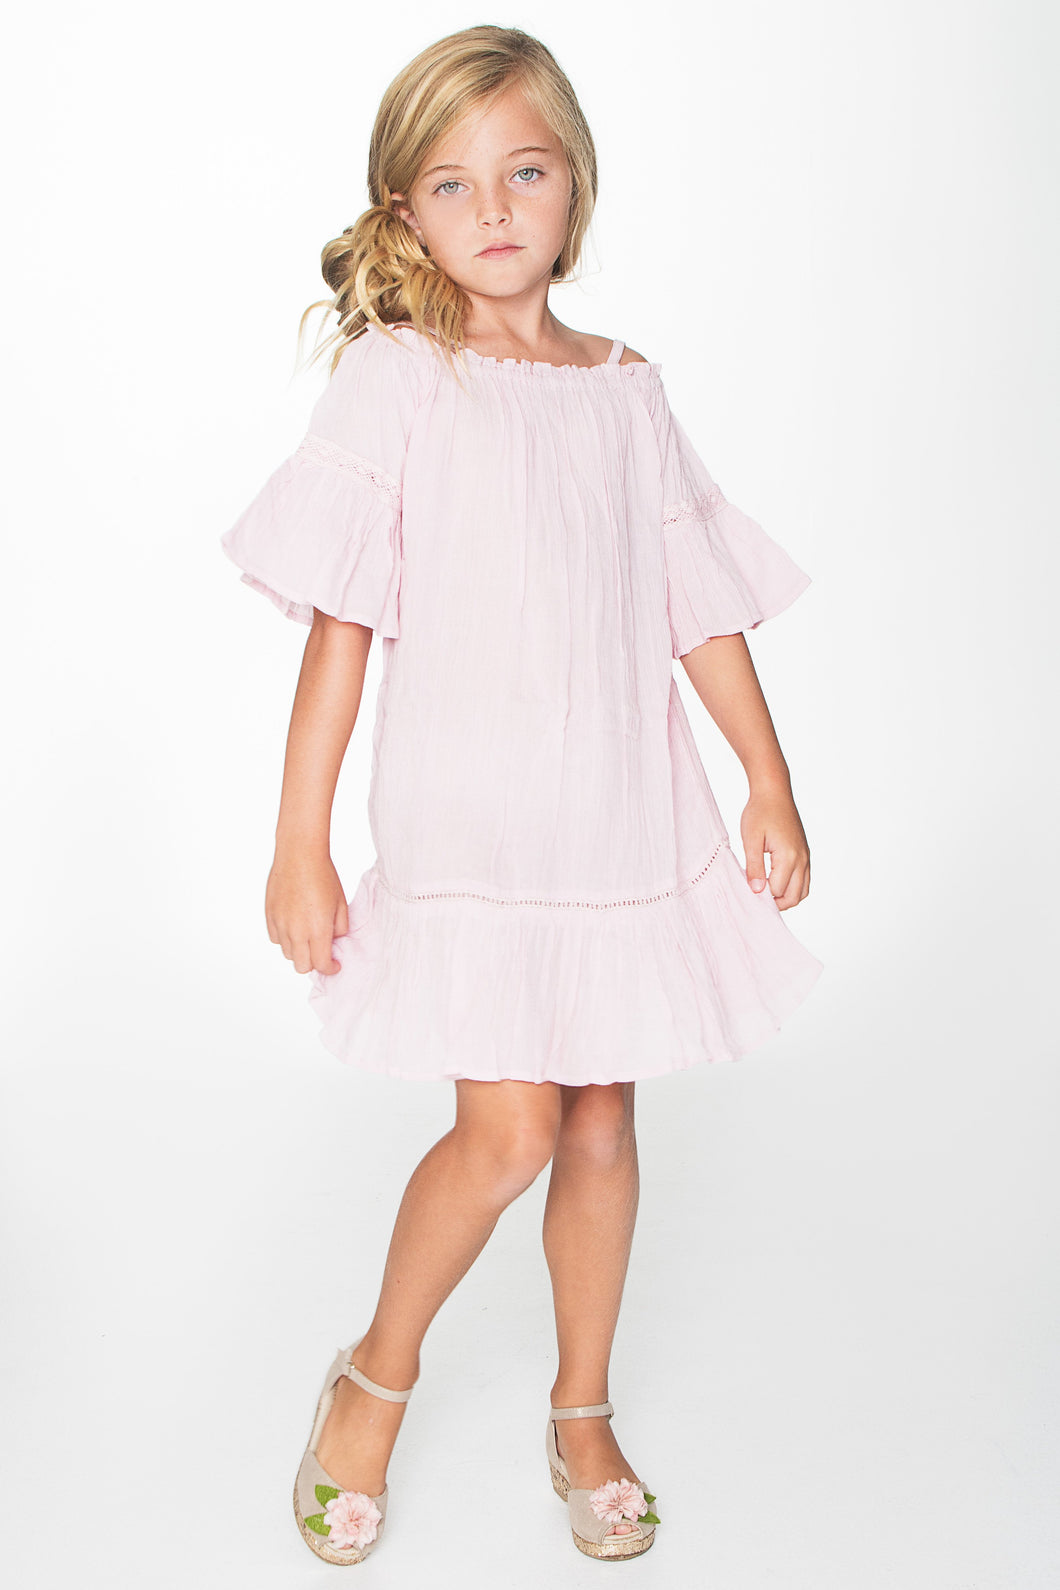 Light Pink Lace Detail Dress - Kids Clothing, Dress - Girls Dress, Yo Baby Online - Yo Baby